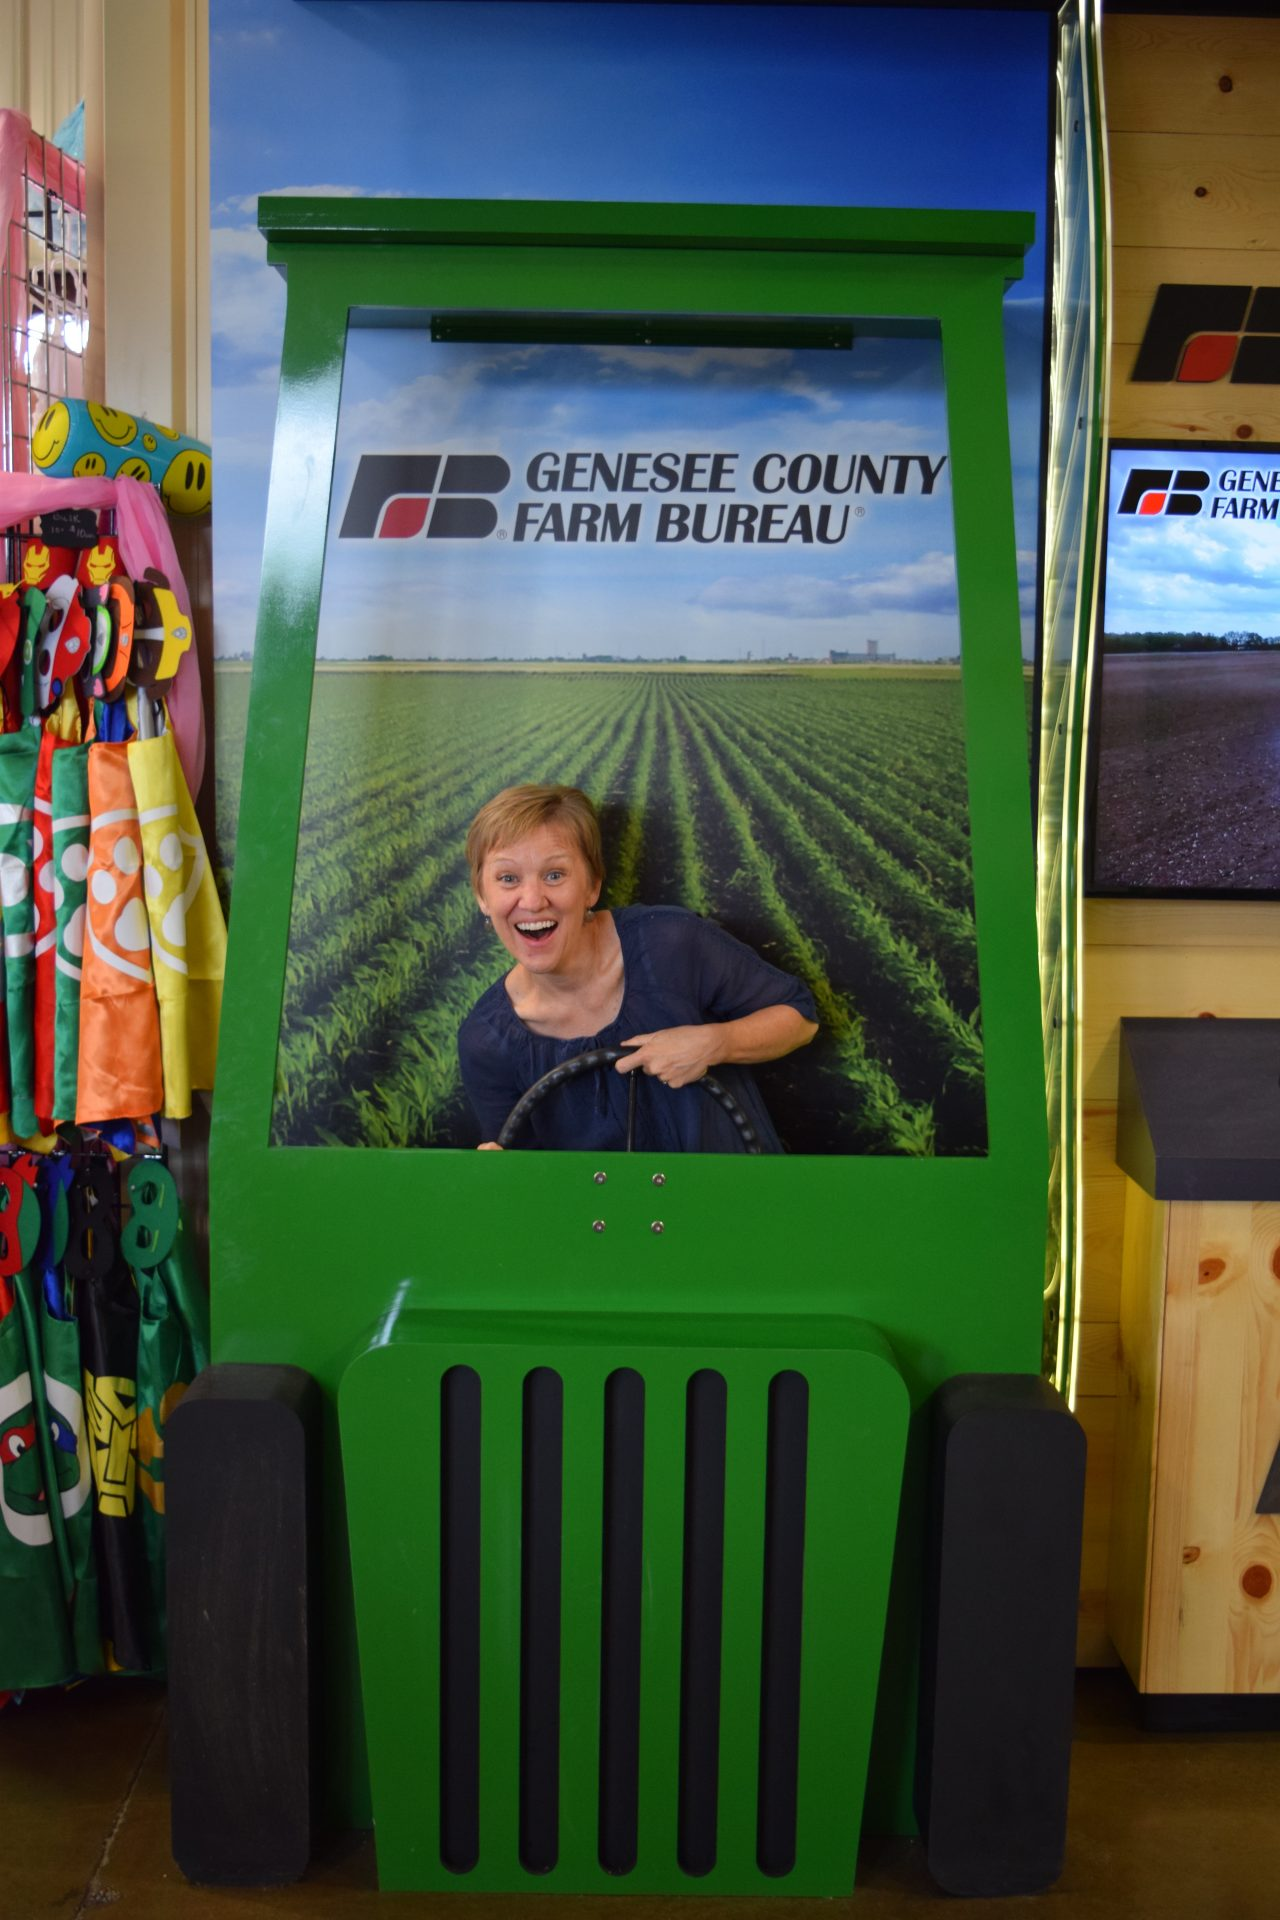 Farmers Market Display And Photo Booth Exhibit Farm The